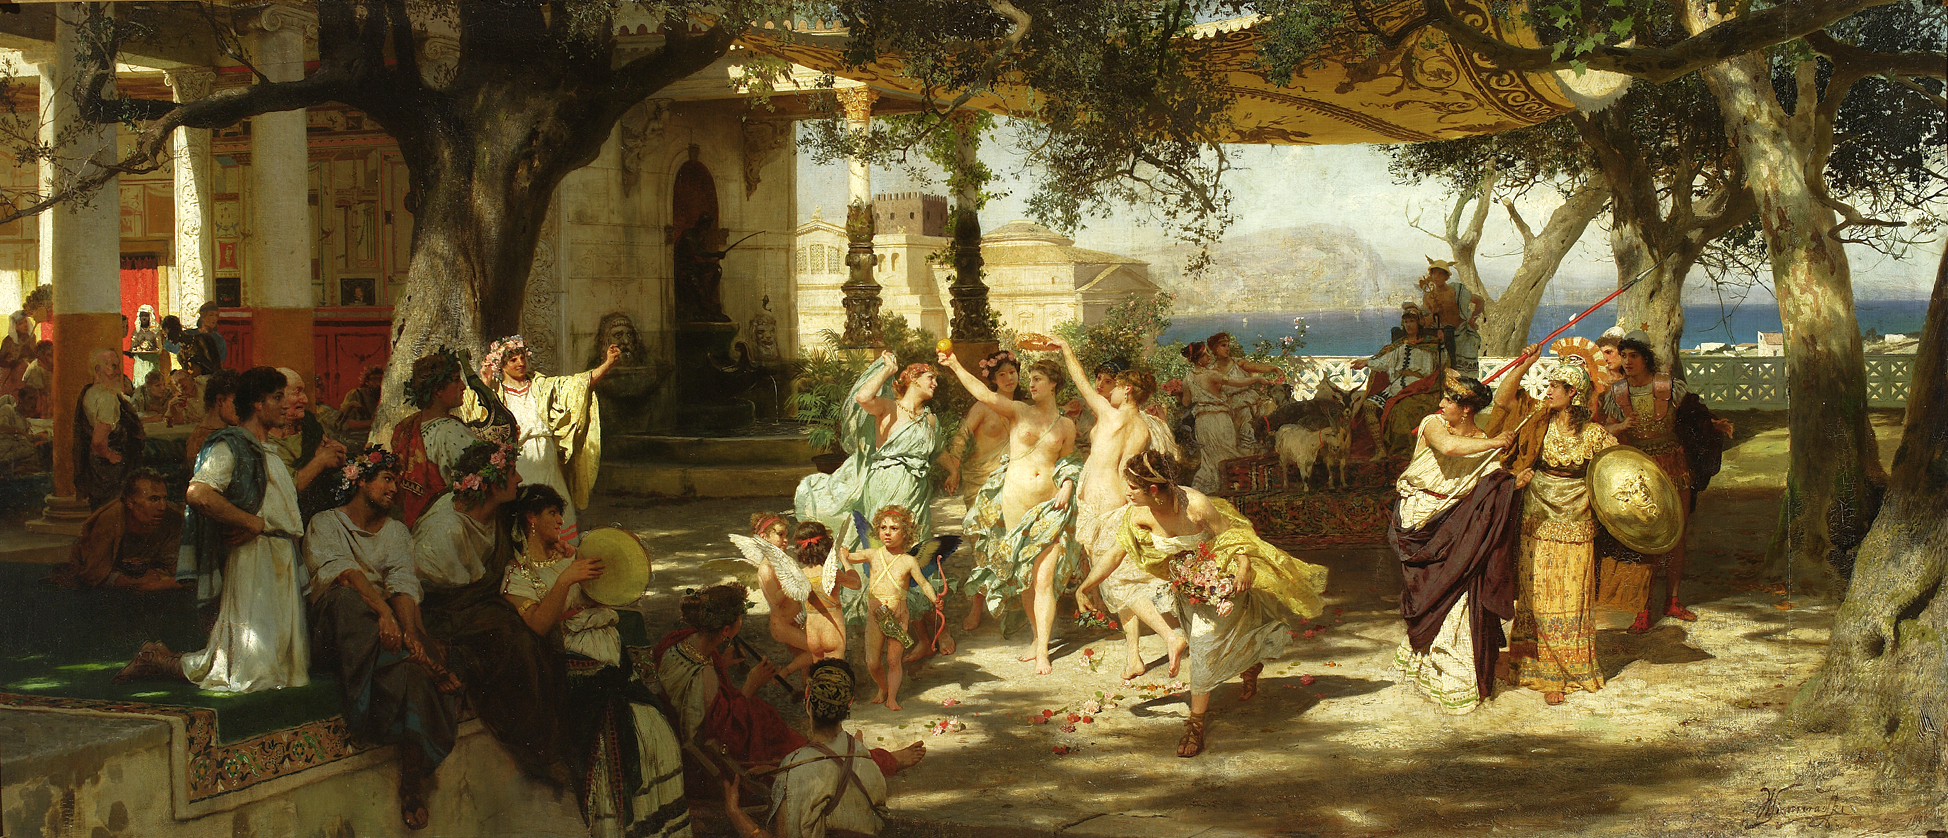 The Judgment of Paris Painting by Jacklyn Friedman